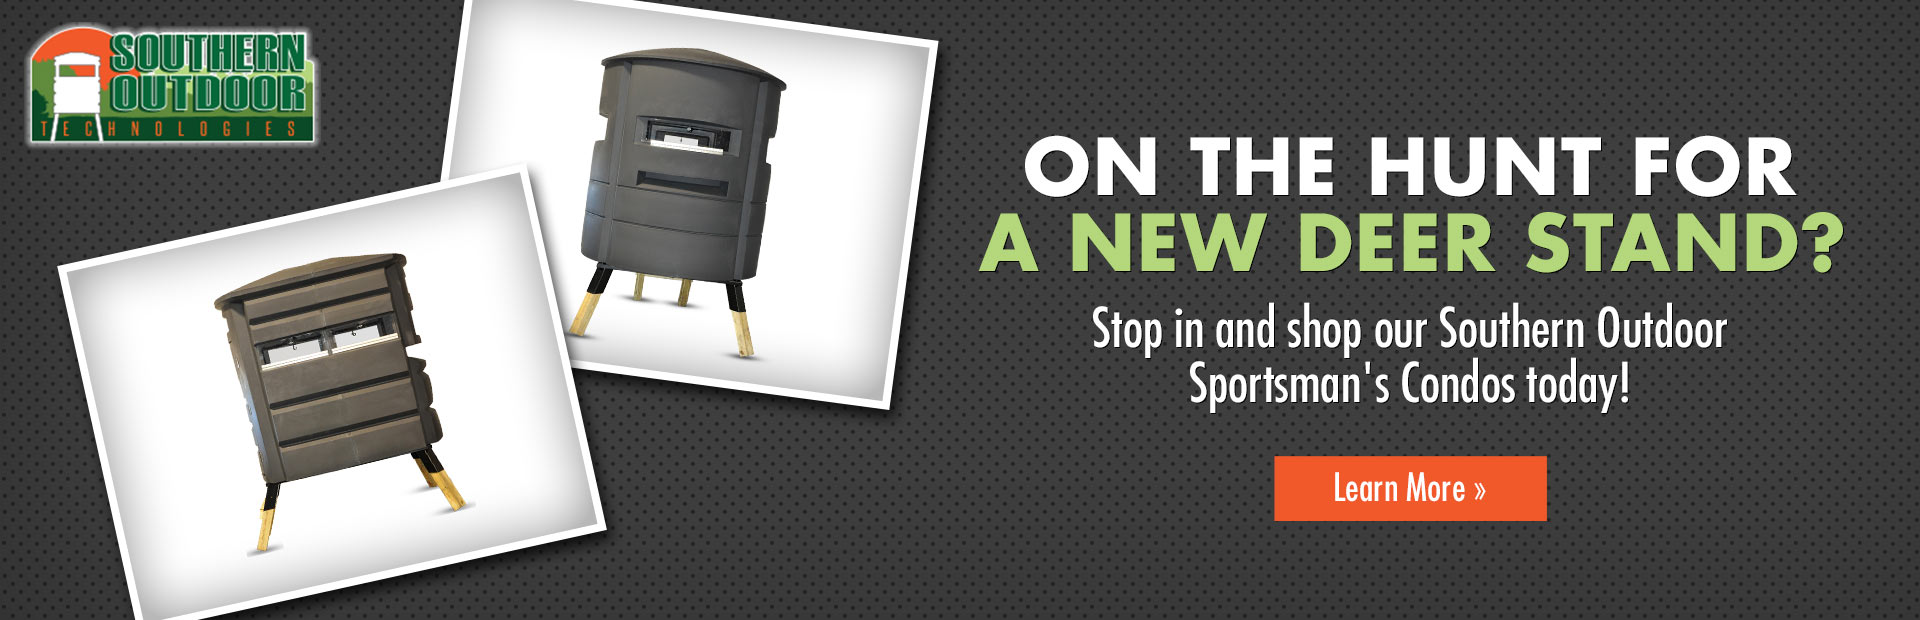 On the hunt for a new deer stand? Stop in and shop our Southern Outdoor Sportsman's Condos today!